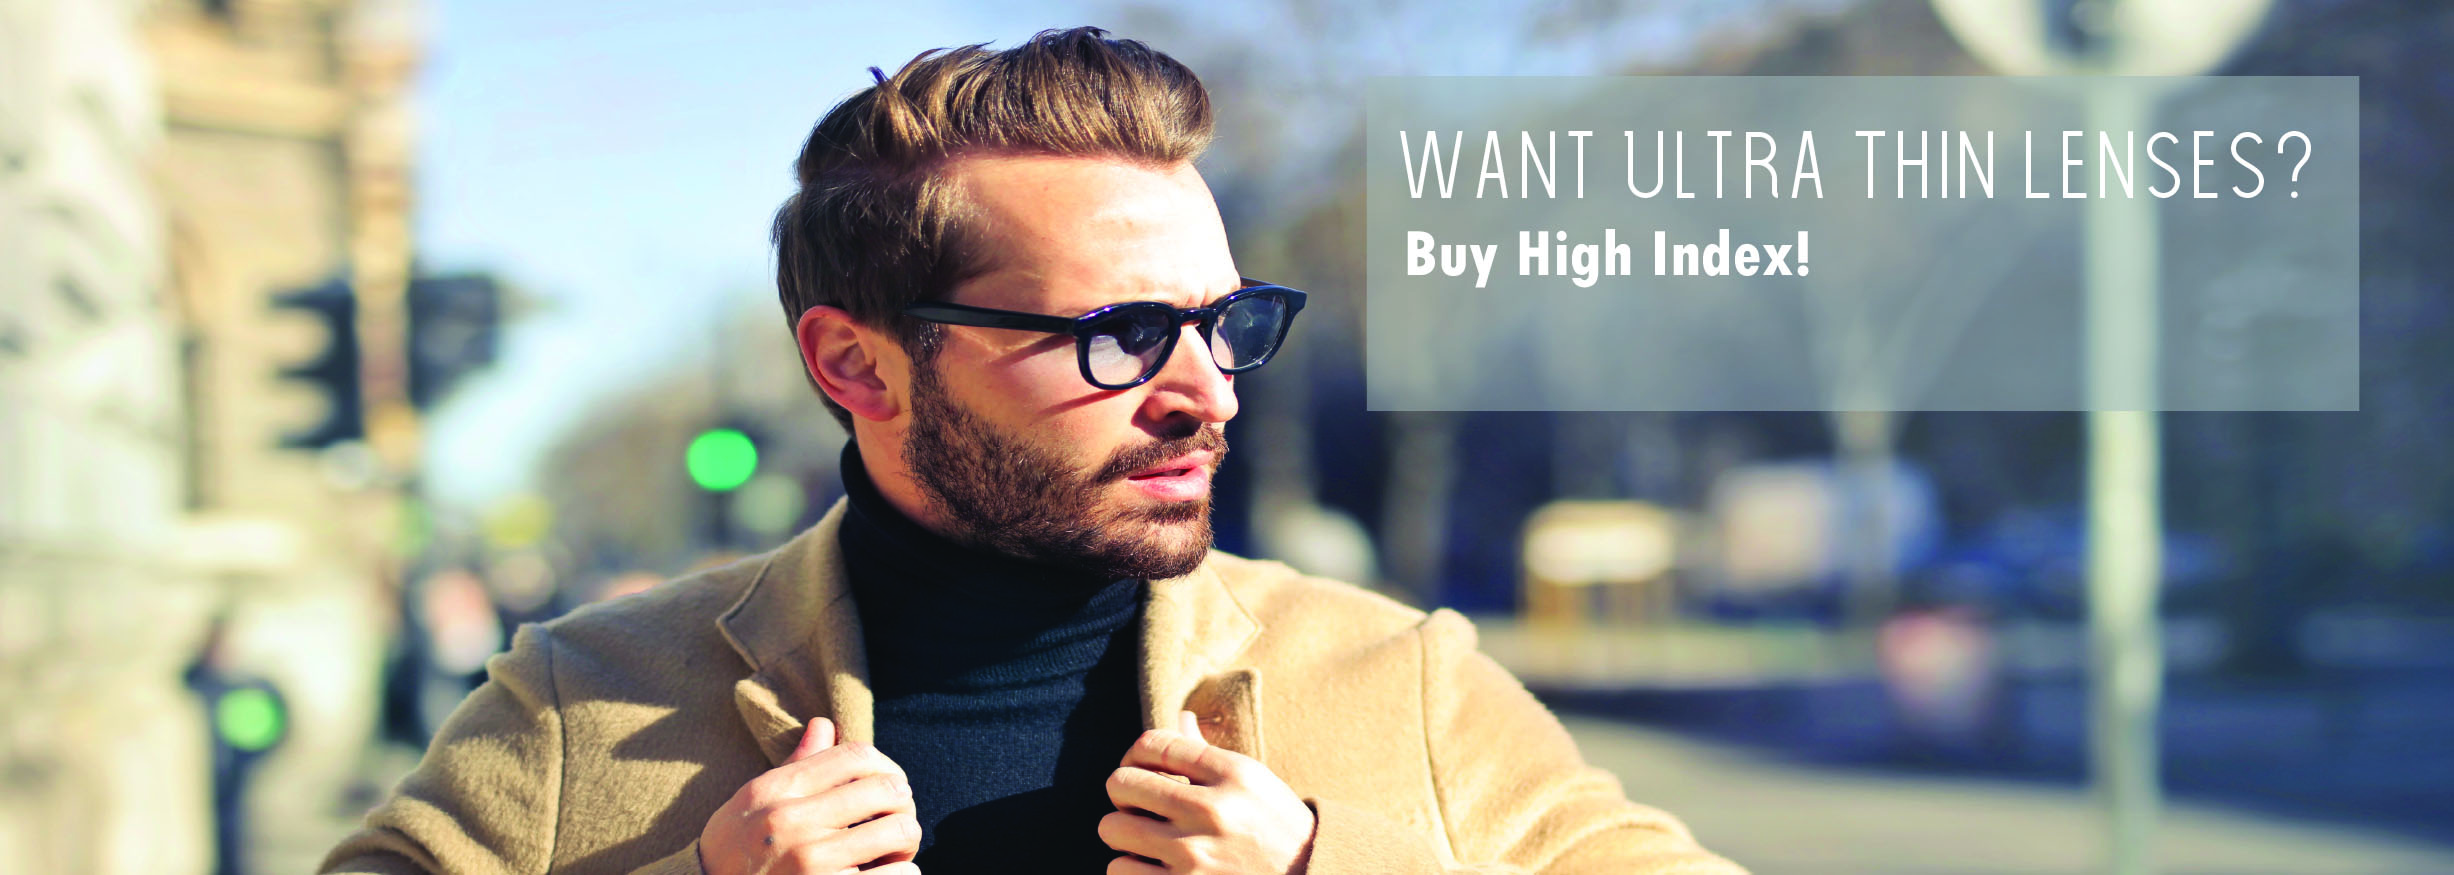 21d5c43b488 ... sure to evaluate them alongside the advantages that high index lenses  offer. Below are ten of the most compelling reasons why you should invest in  high ...